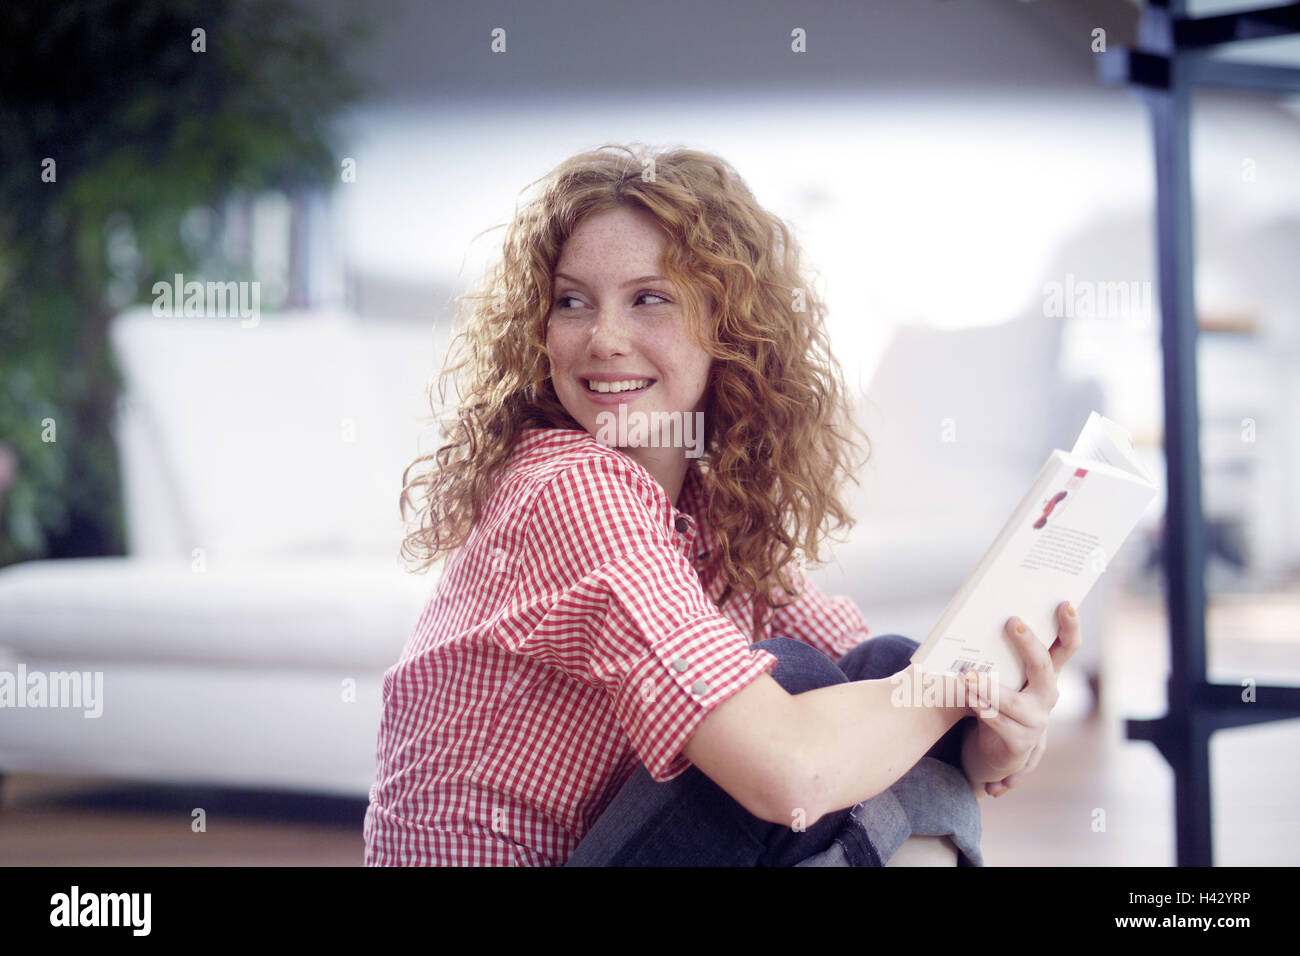 Sitting rooms, floor, woman, young, paperback, view shoulder, side view, redheads, red-haired, long-haired, curls, - Stock Image